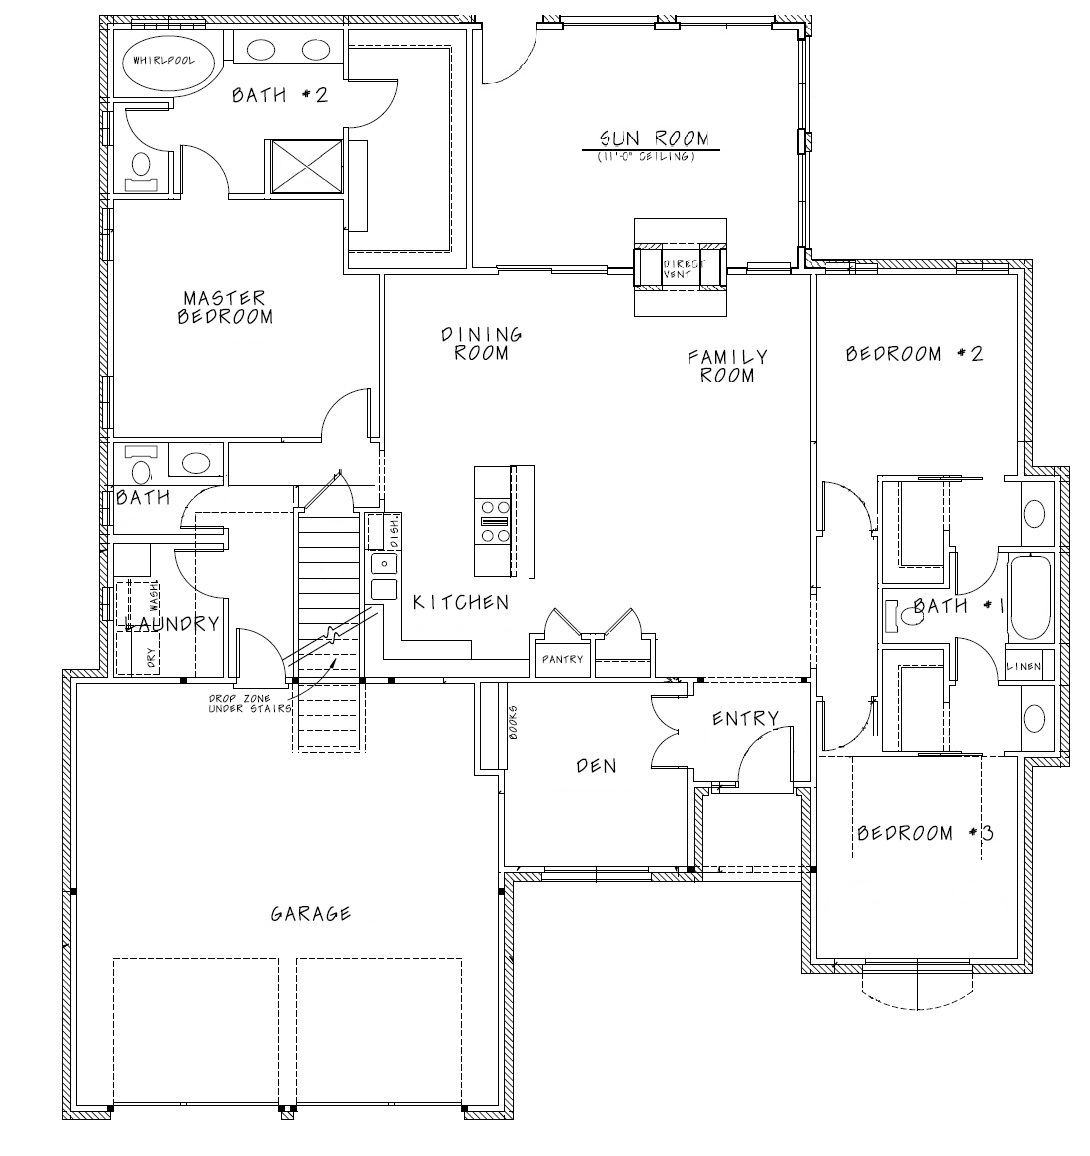 hight resolution of alli ii fll dd floor plan with sunroom artwork